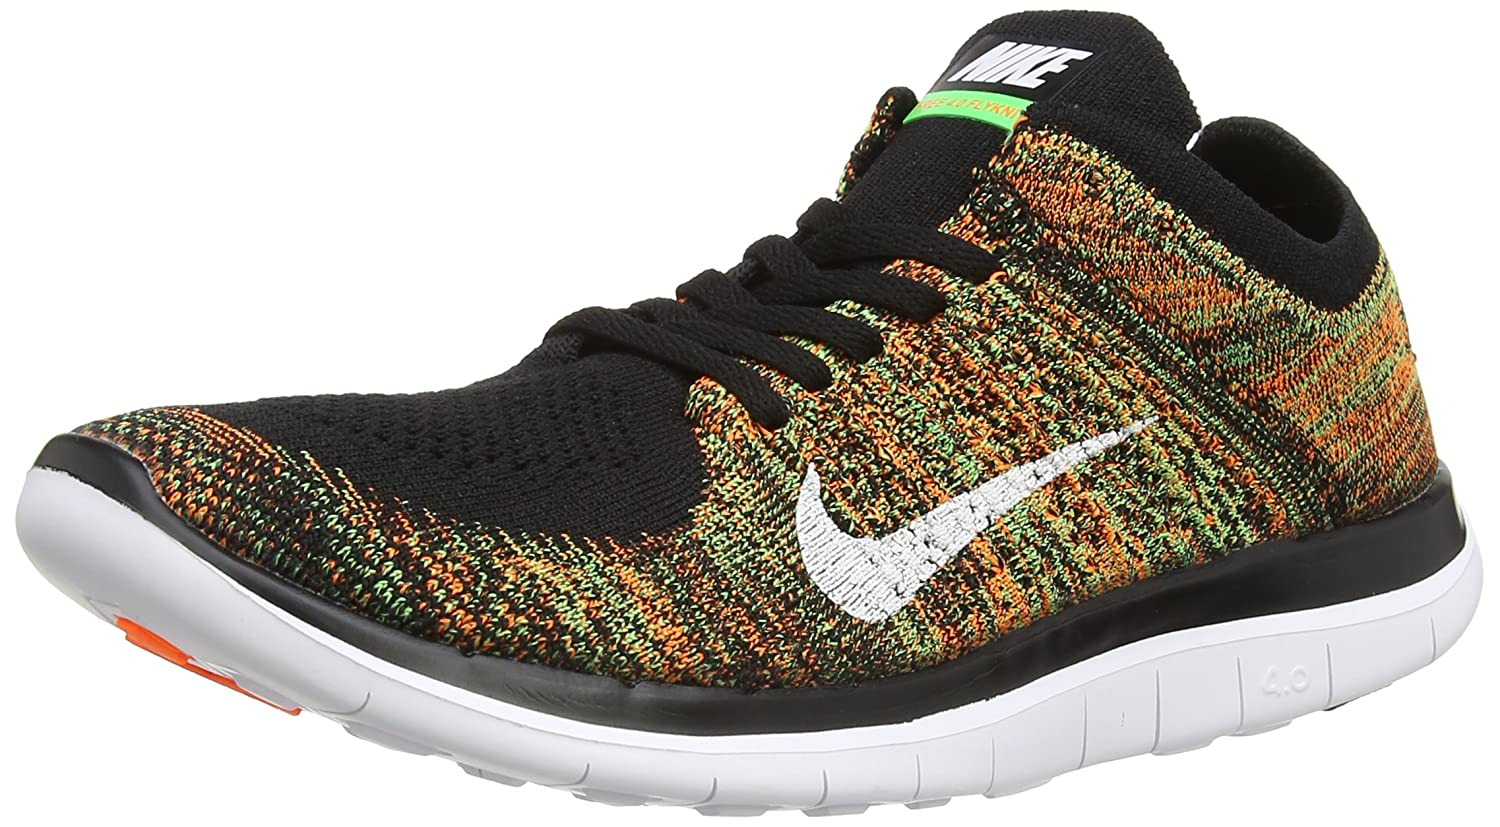 new arrival aec95 c0924 Nike Free 4.0 Flyknit, Men s Running Shoes  Amazon.co.uk  Shoes   Bags